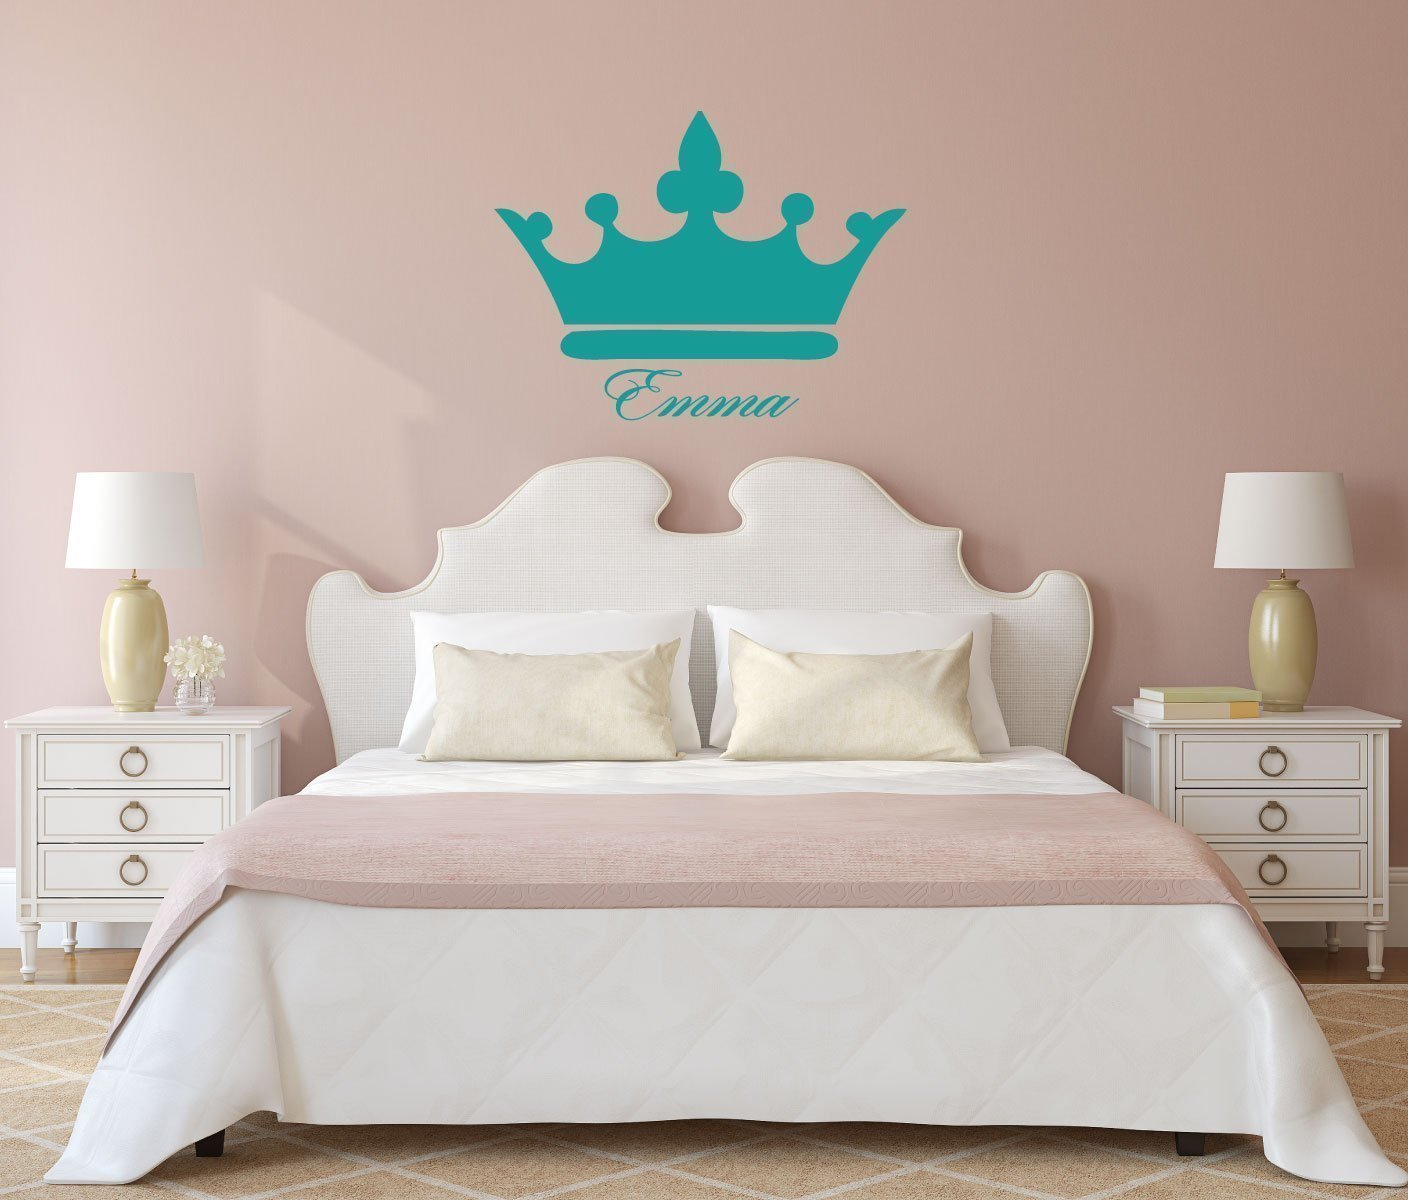 Name Wall Decals for Girls Princess or Queen Crown With Custom Name Vinyl Art Decor for Babies Kids and Teenagers